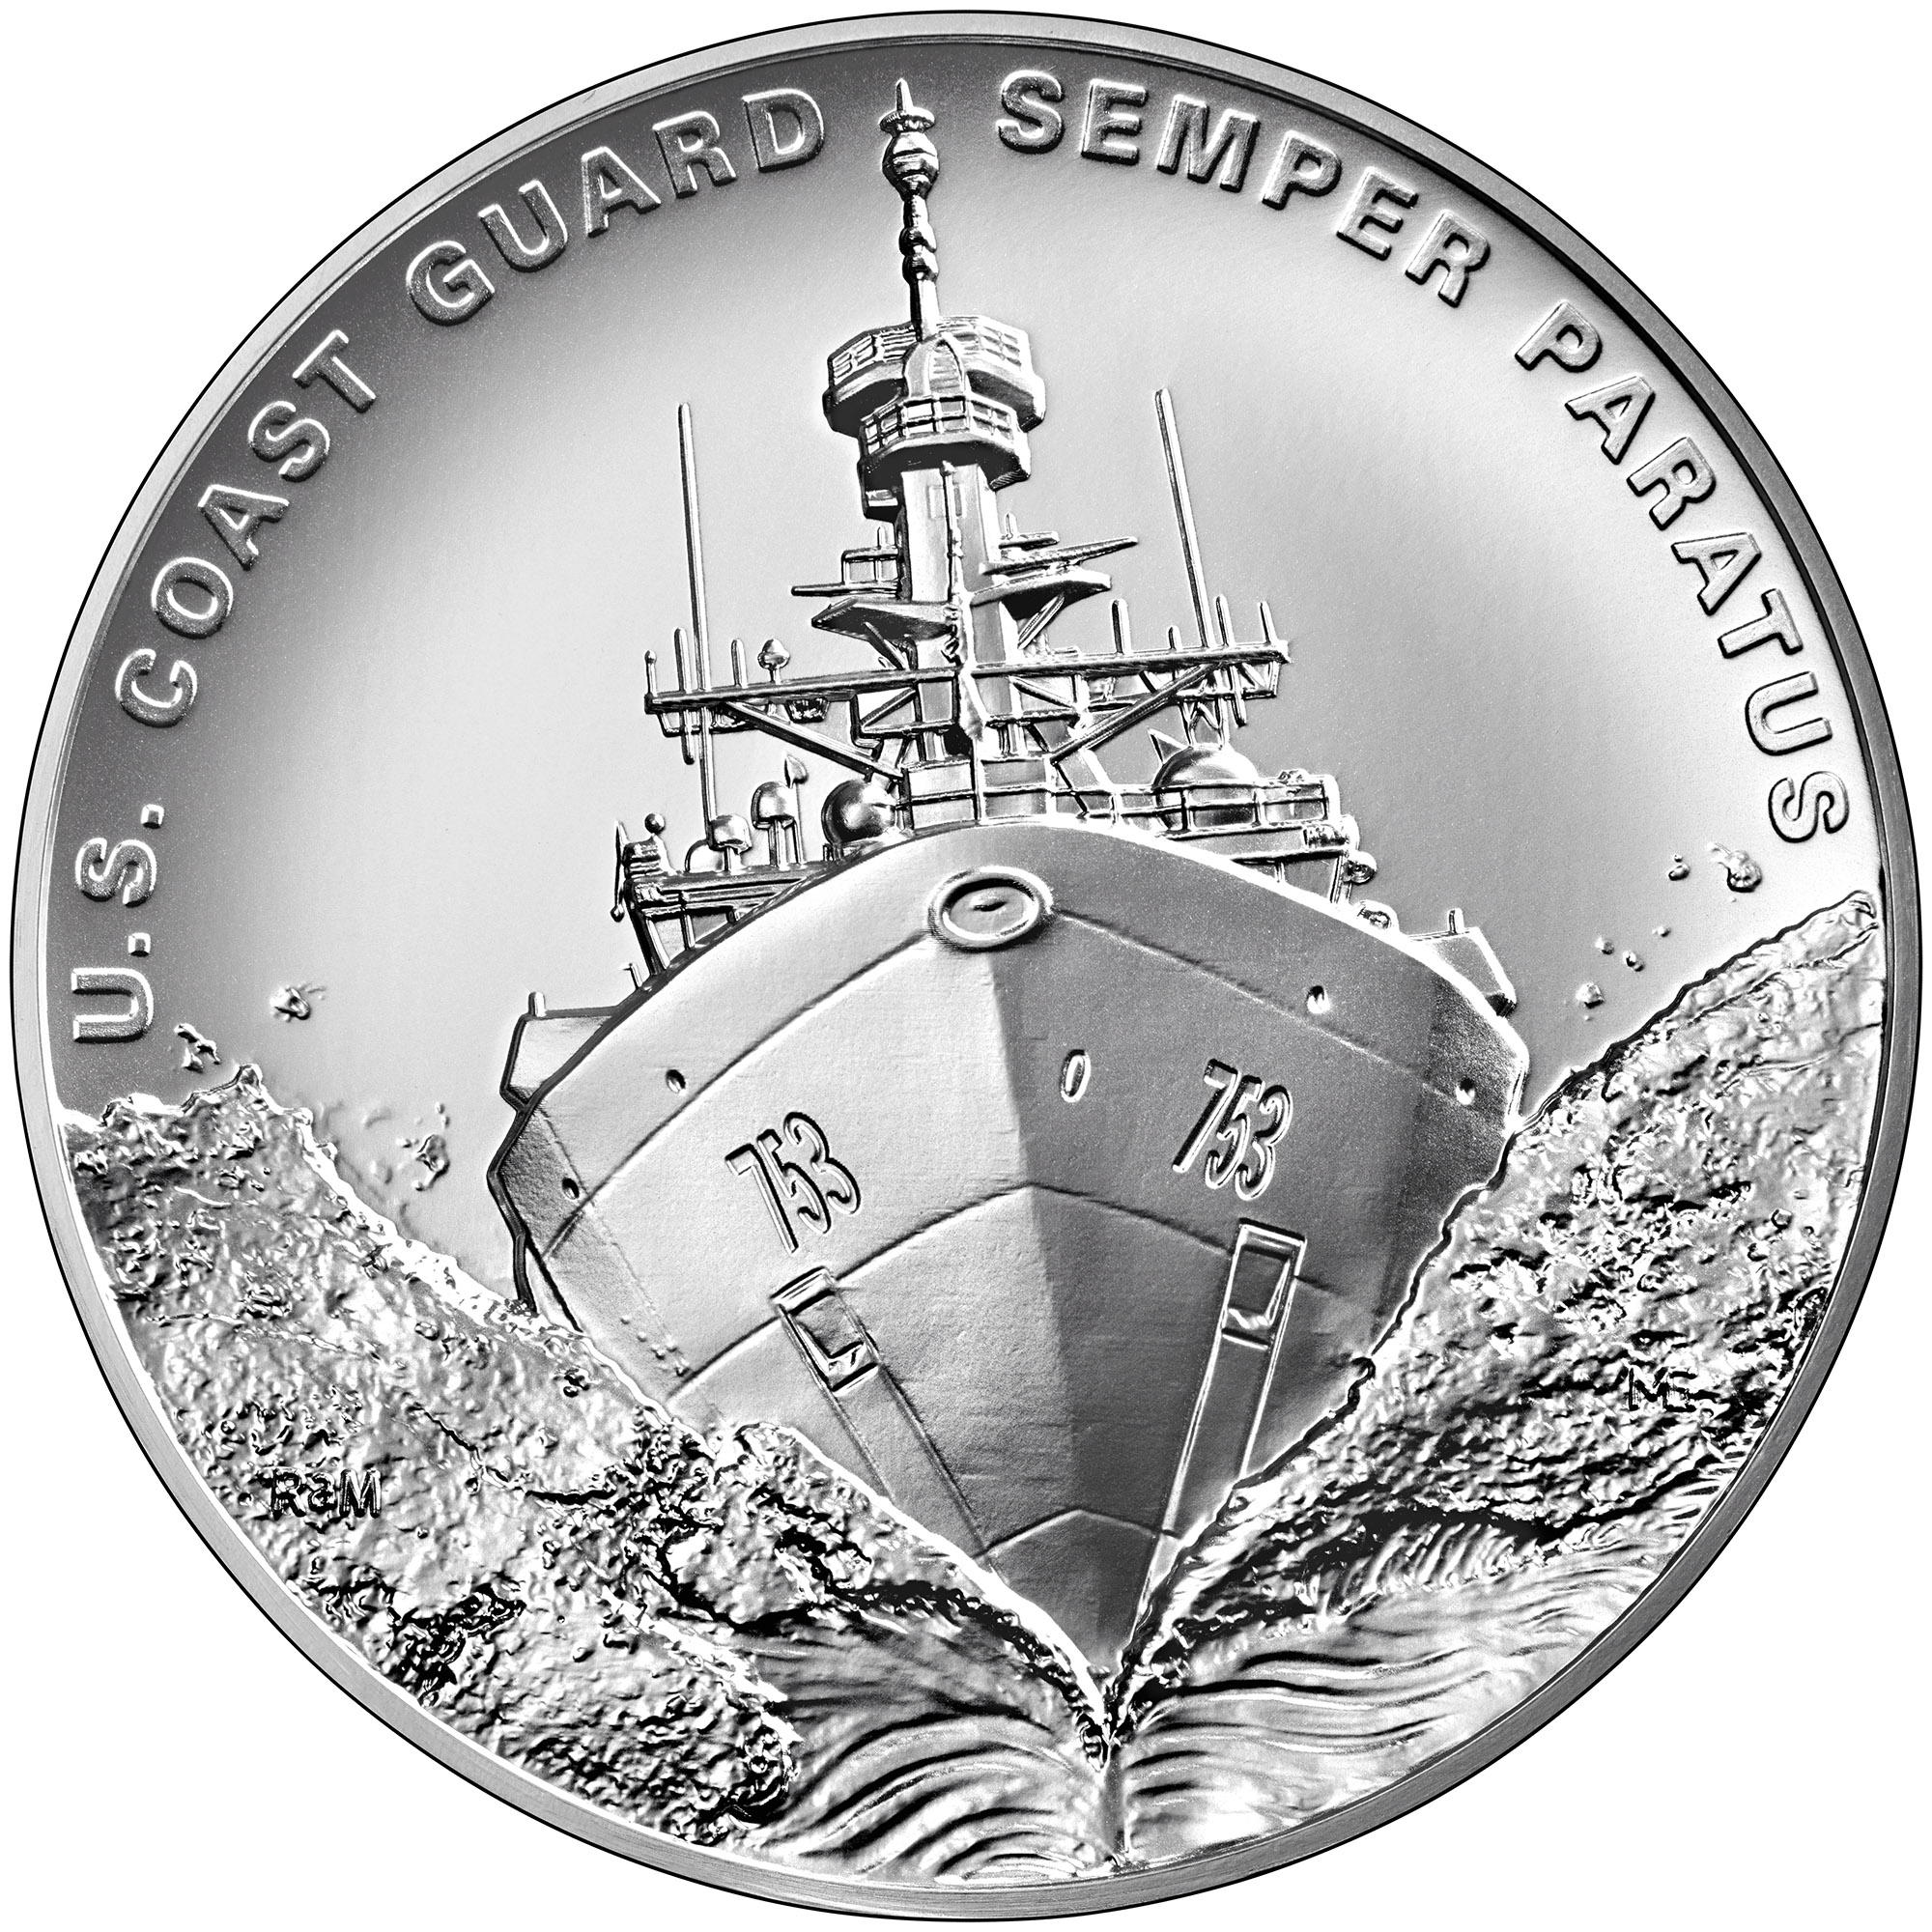 Armed Forces Silver Medal U.S. Coast Guard Obverse